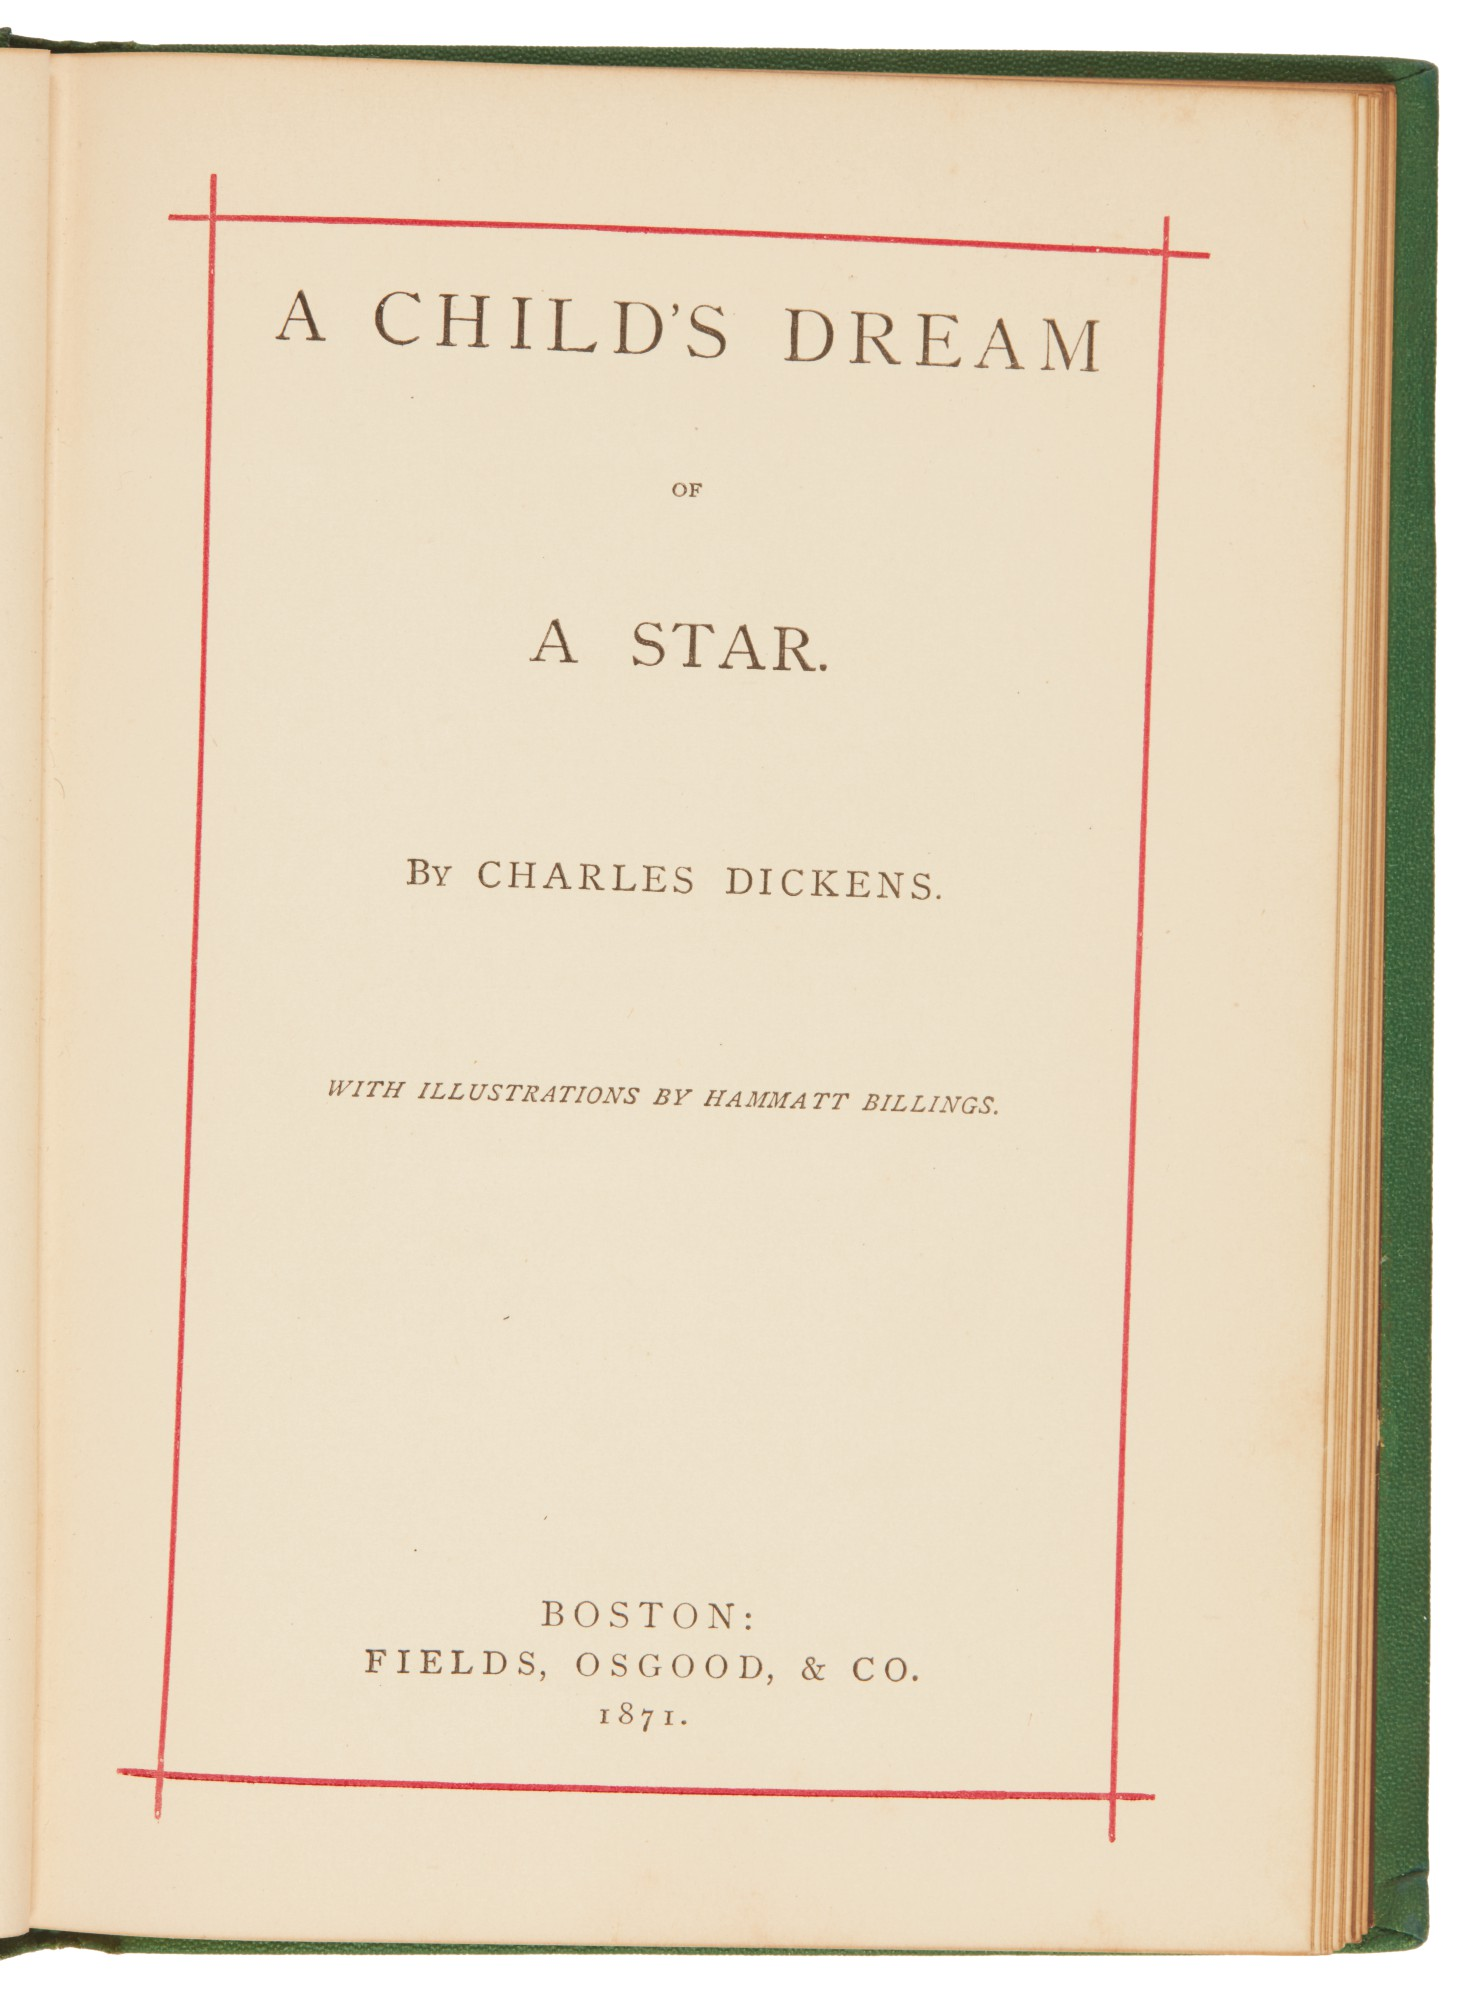 Dickens, A Child's Dream of a Star, 1871, first separate book publication